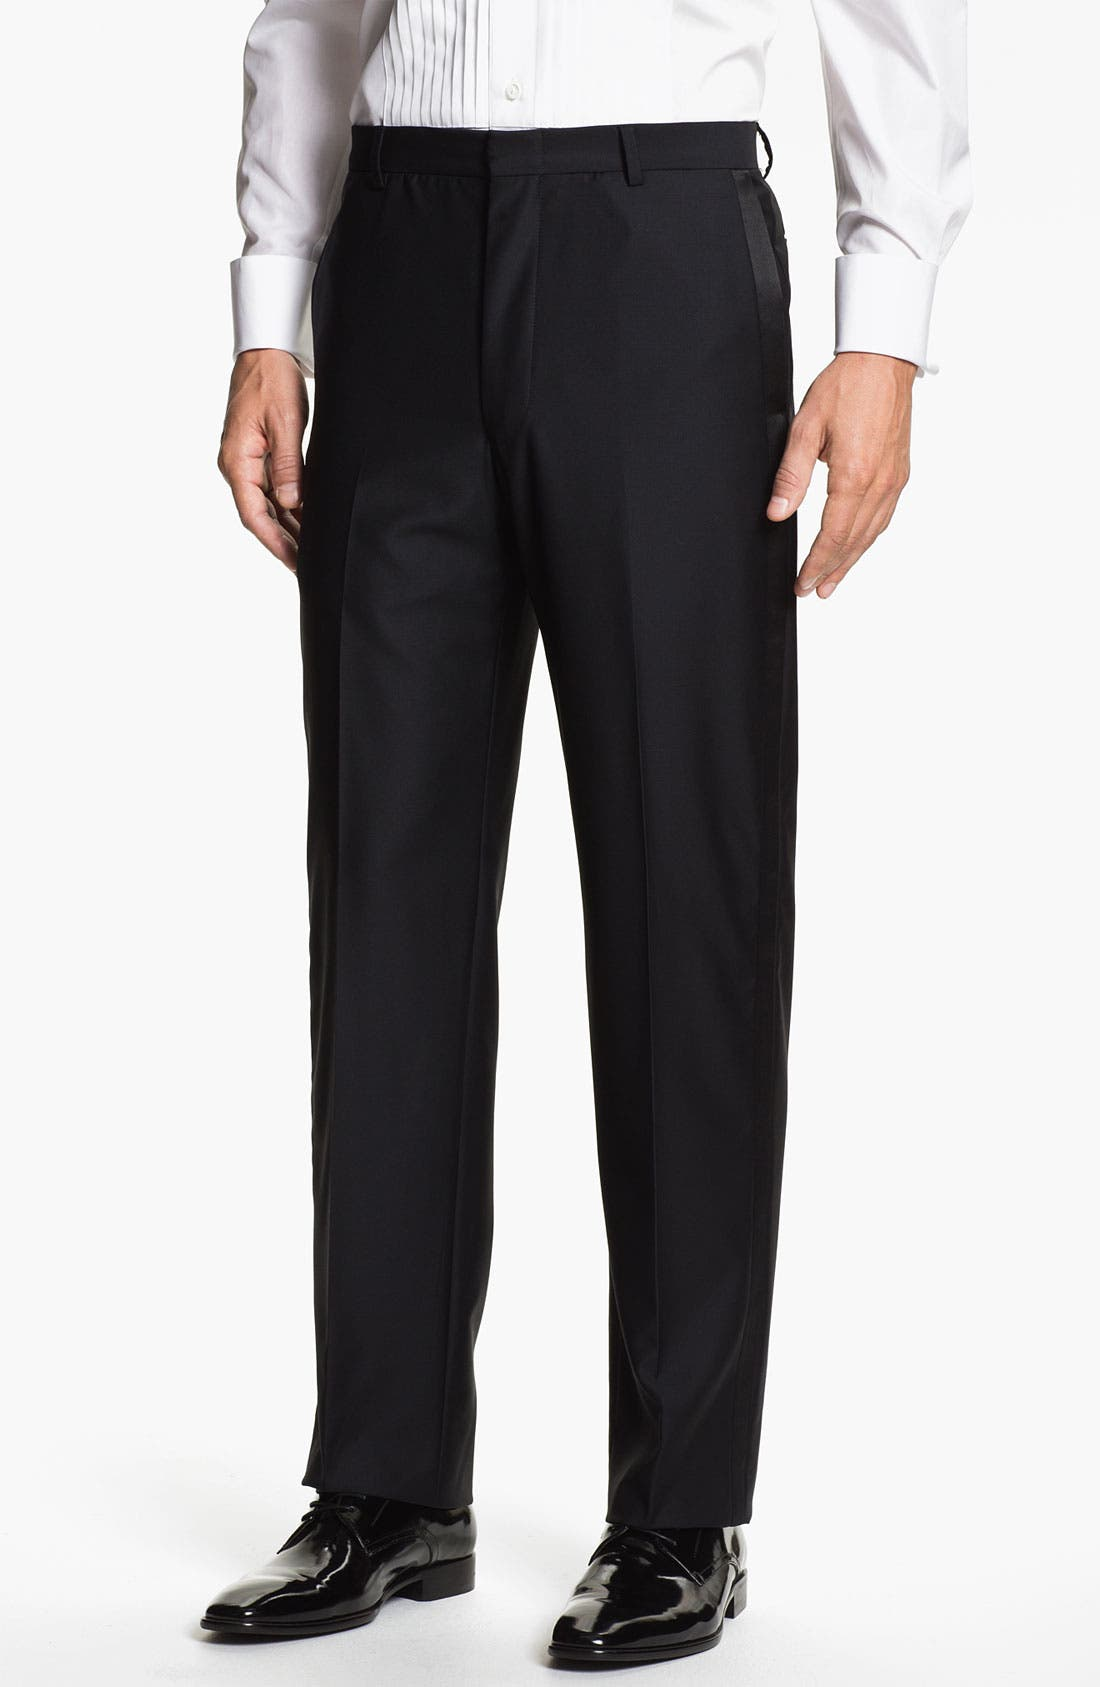 Main Image - John W. Nordstrom® Signature Flat Front Tuxedo Trousers